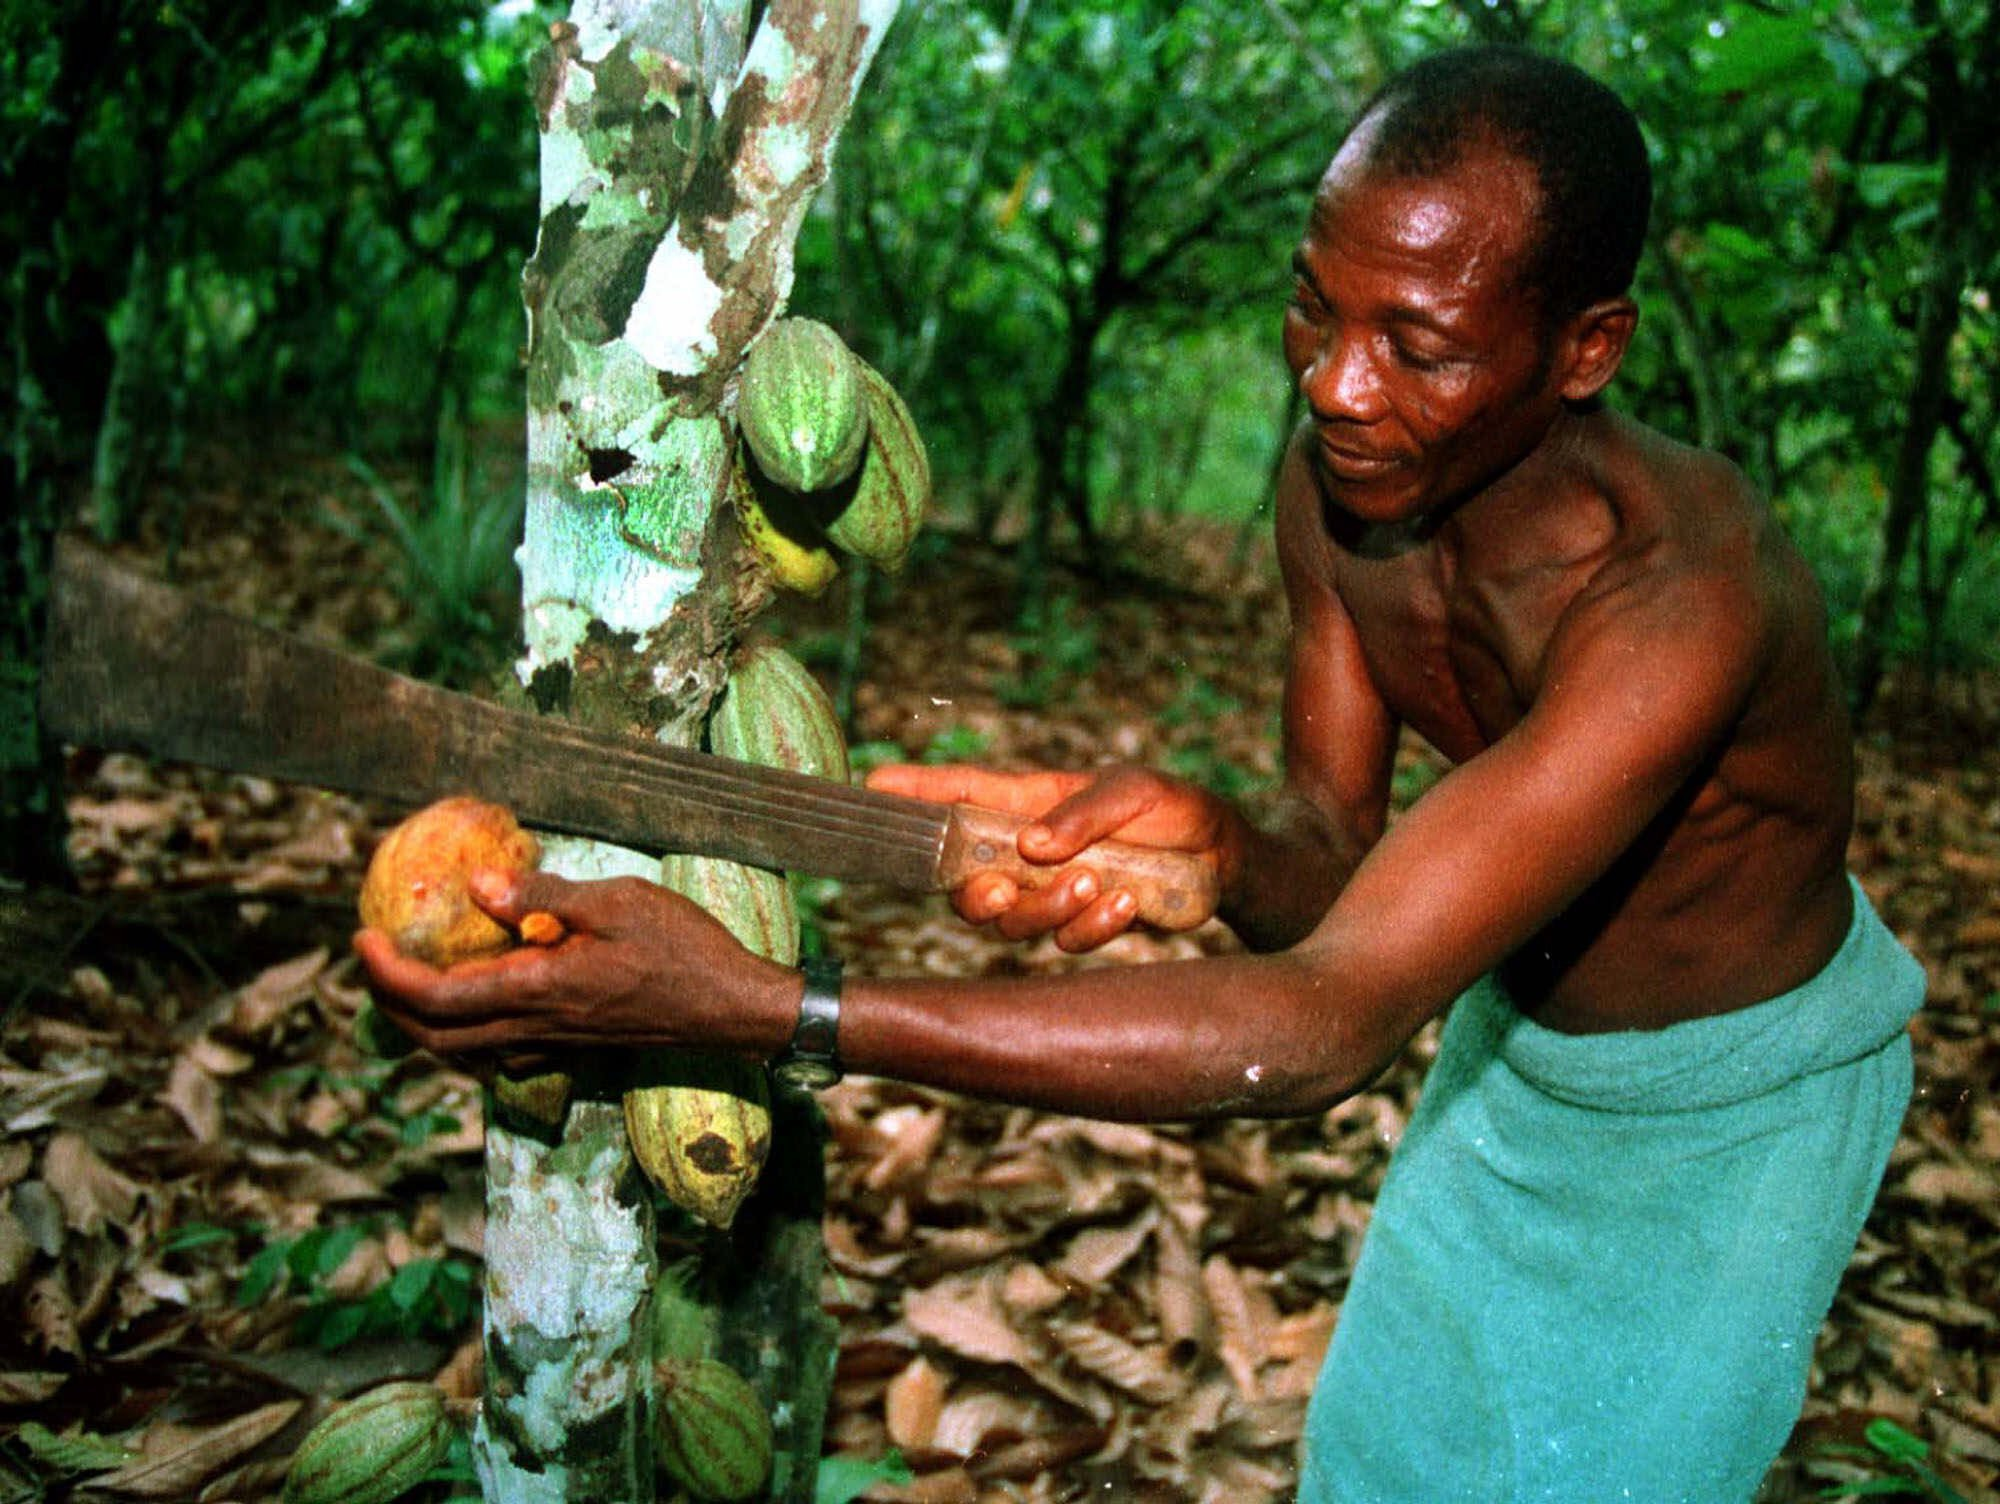 Pod of cocoa beans in Ivory Coast